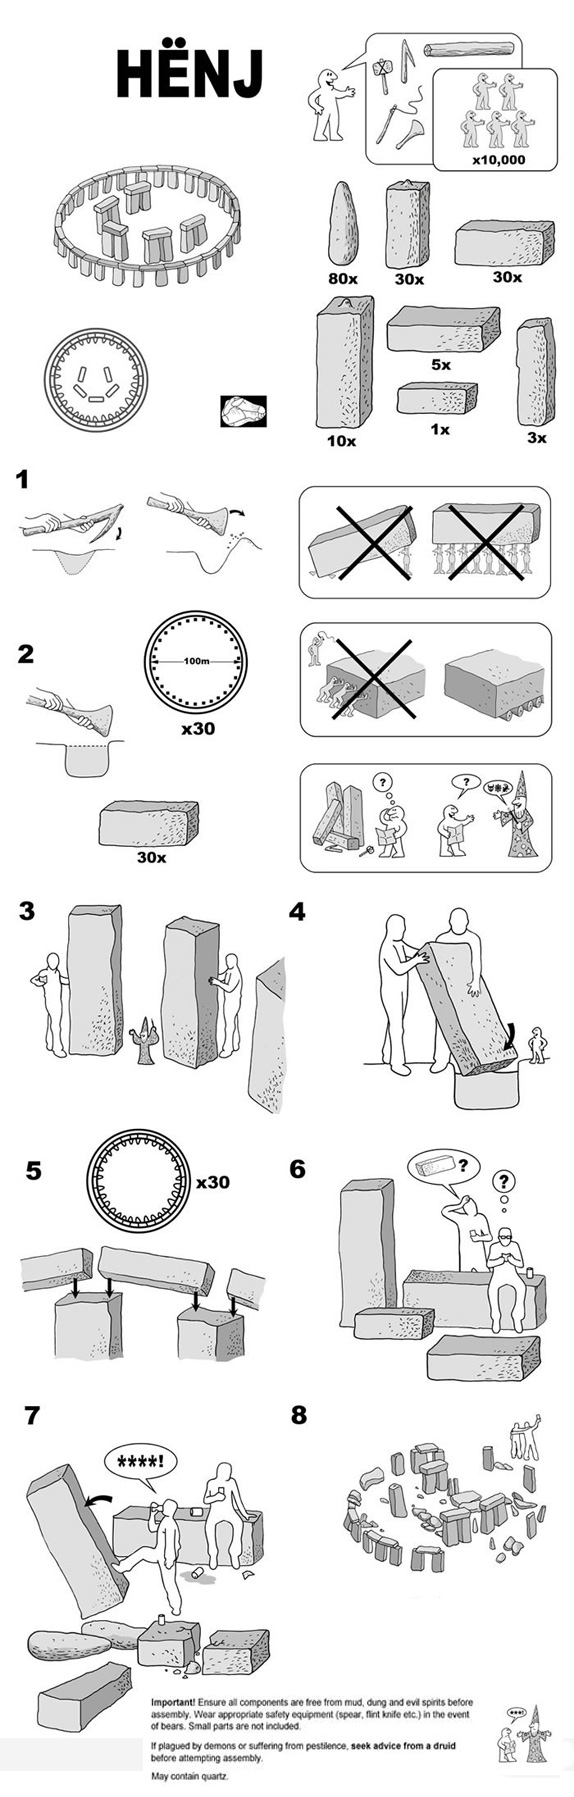 IKEA Instruction Manual for Building Stonehenge9bytz – Instructional Manual